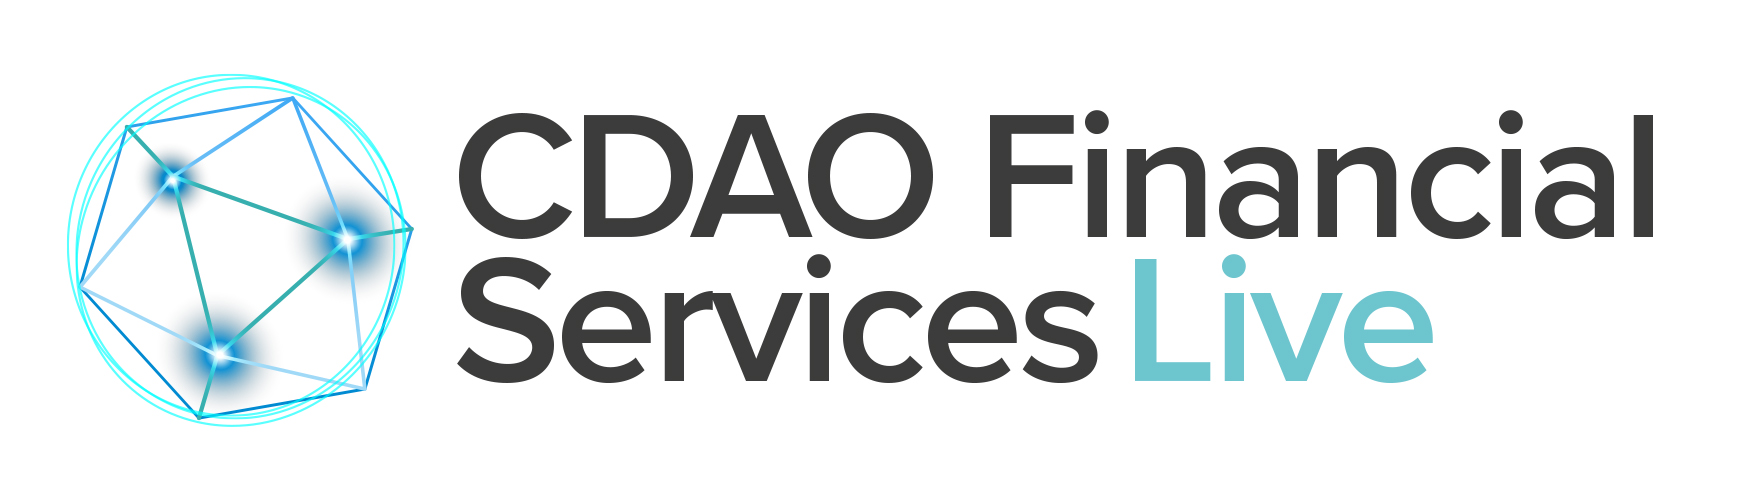 CDAO Financial Services LIVE